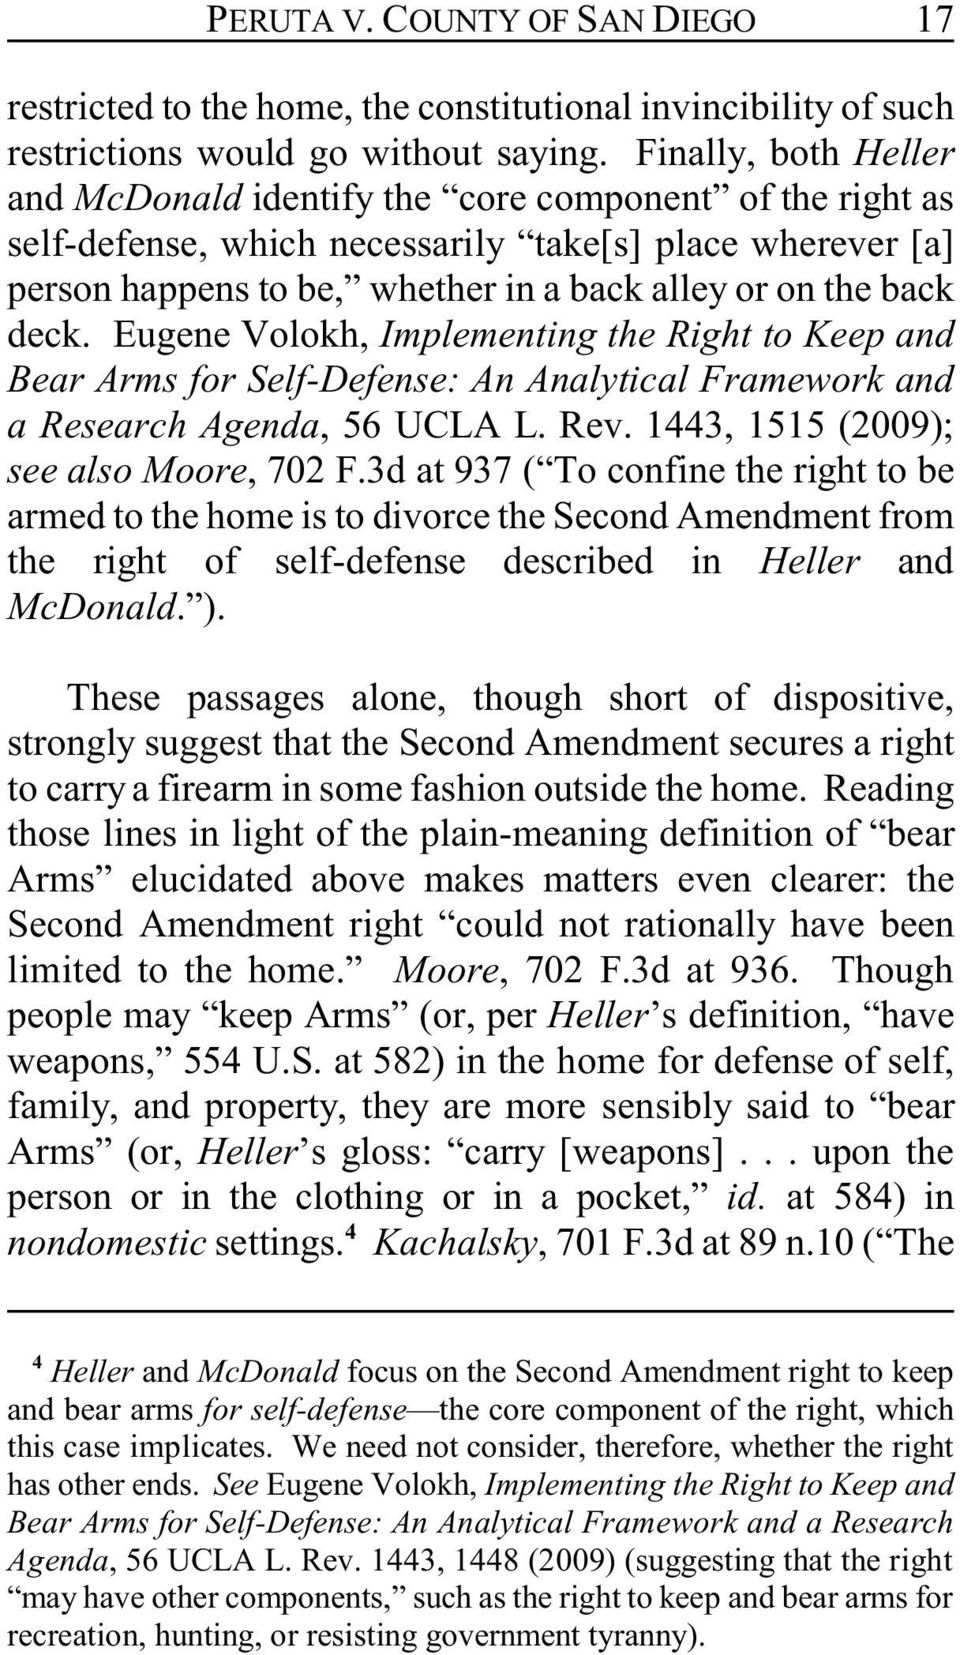 deck. Eugene Volokh, Implementing the Right to Keep and Bear Arms for Self-Defense: An Analytical Framework and a Research Agenda, 56 UCLA L. Rev. 1443, 1515 (2009); see also Moore, 702 F.